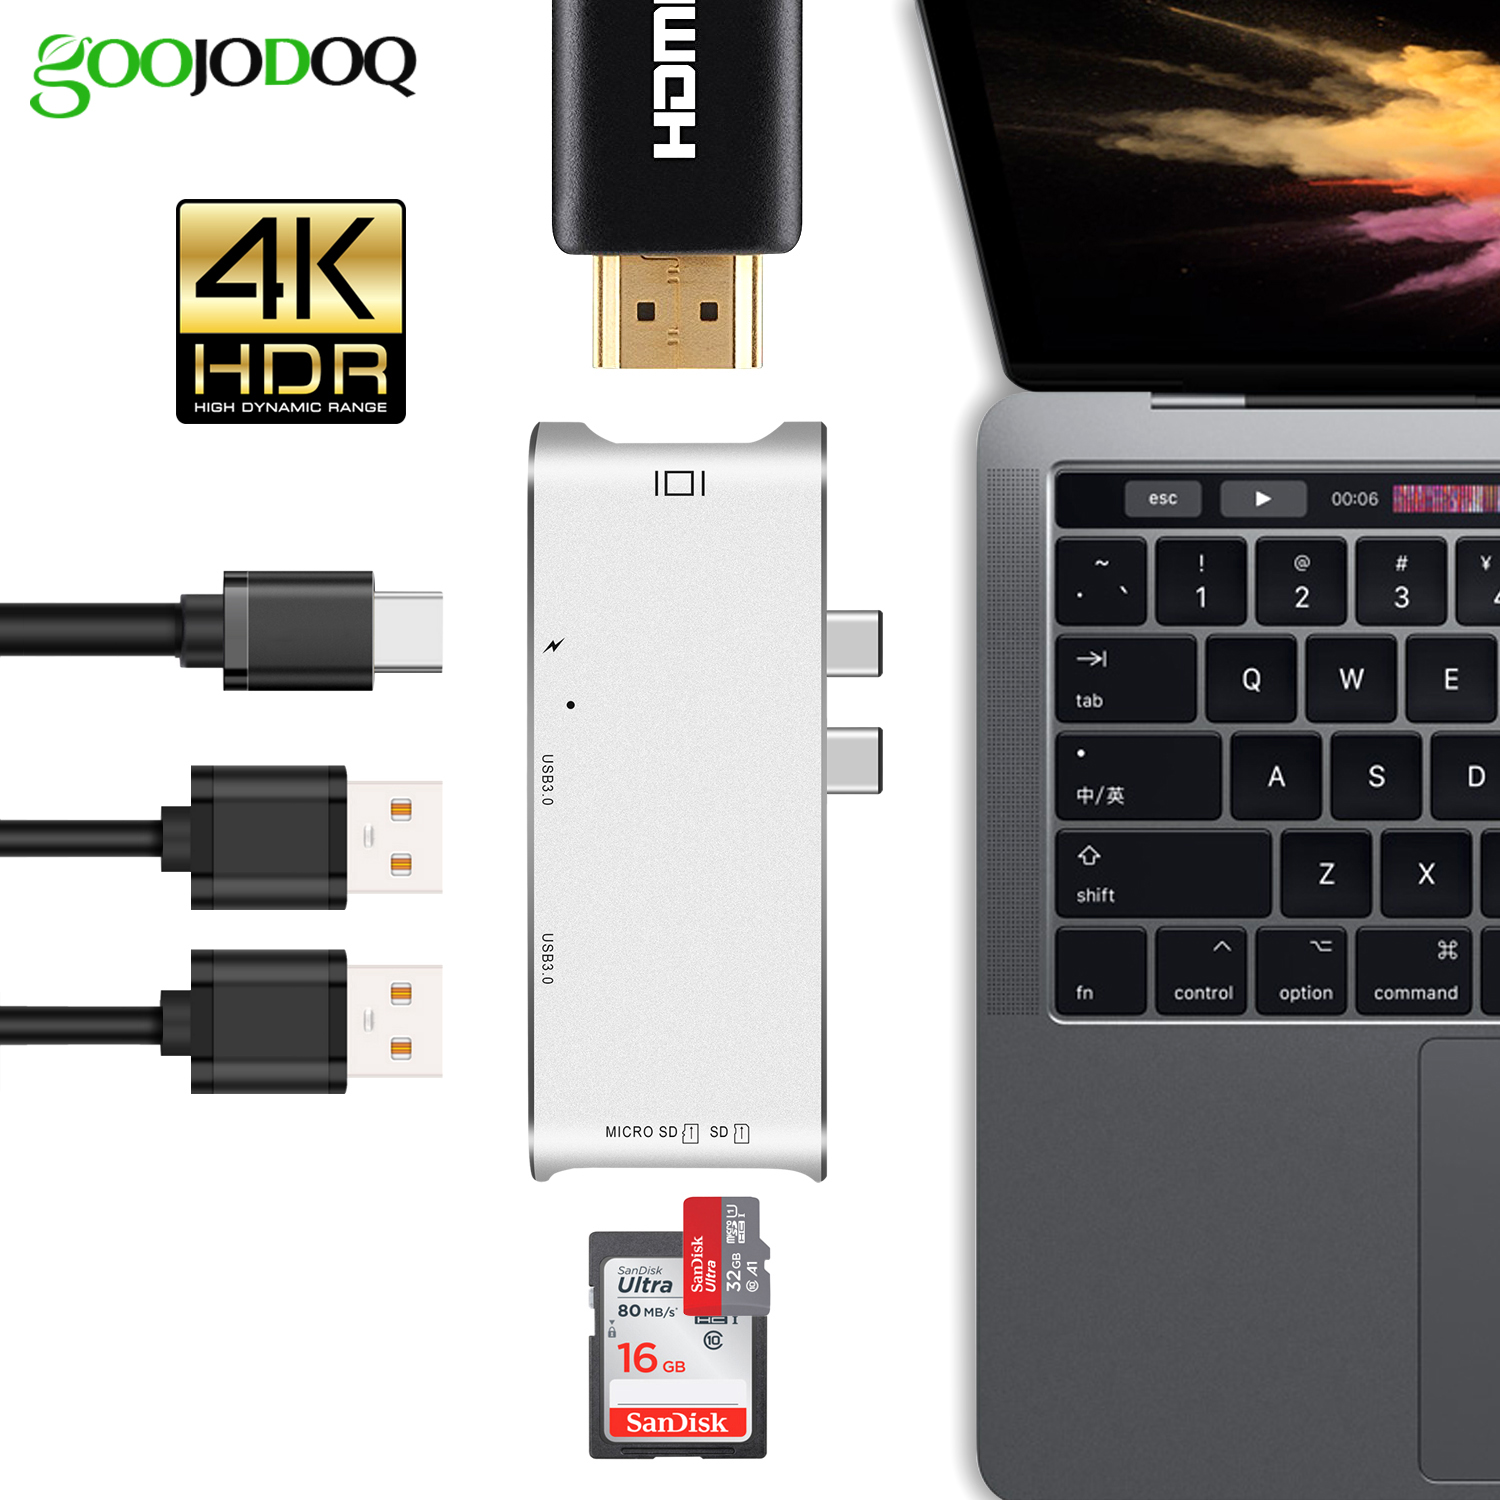 USB C HUB HDMI for MacBook Pro Hub Adapter, thunderbolt 3 USB-C HDMI USB 3.1 SD/TF Card Reader+ Type-C Power Delivery Type C Hub dual usb 3 1 type c hub to card reader usb c hub 3 0 adapter combo with tf sd slot for macbook pro 2016 2017 usb c power deliver